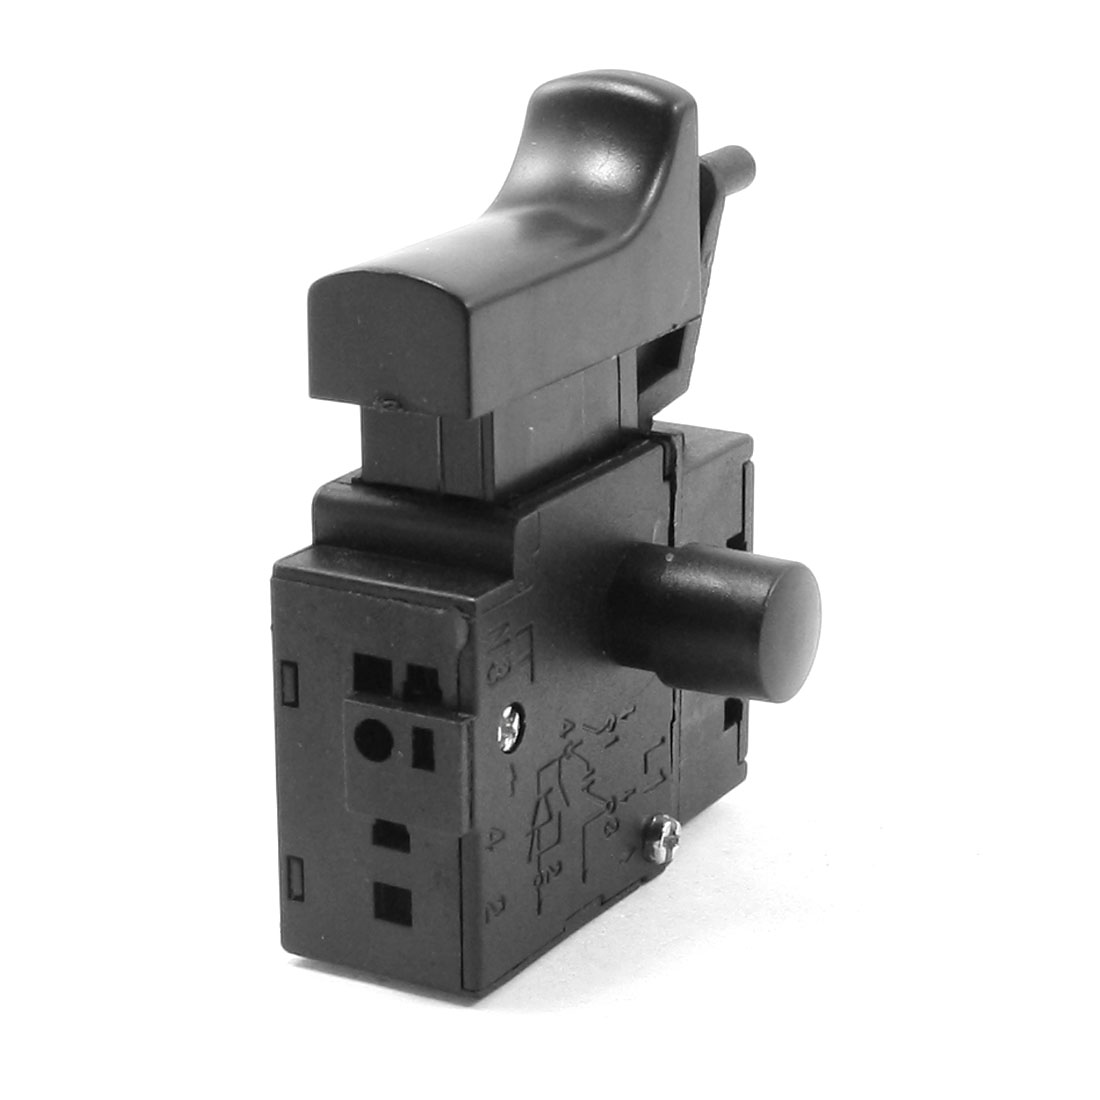 6A 250VAC 5E4 Manual Operation Lock FA2-4/1BEK Trigger Switch for Keyang 10A